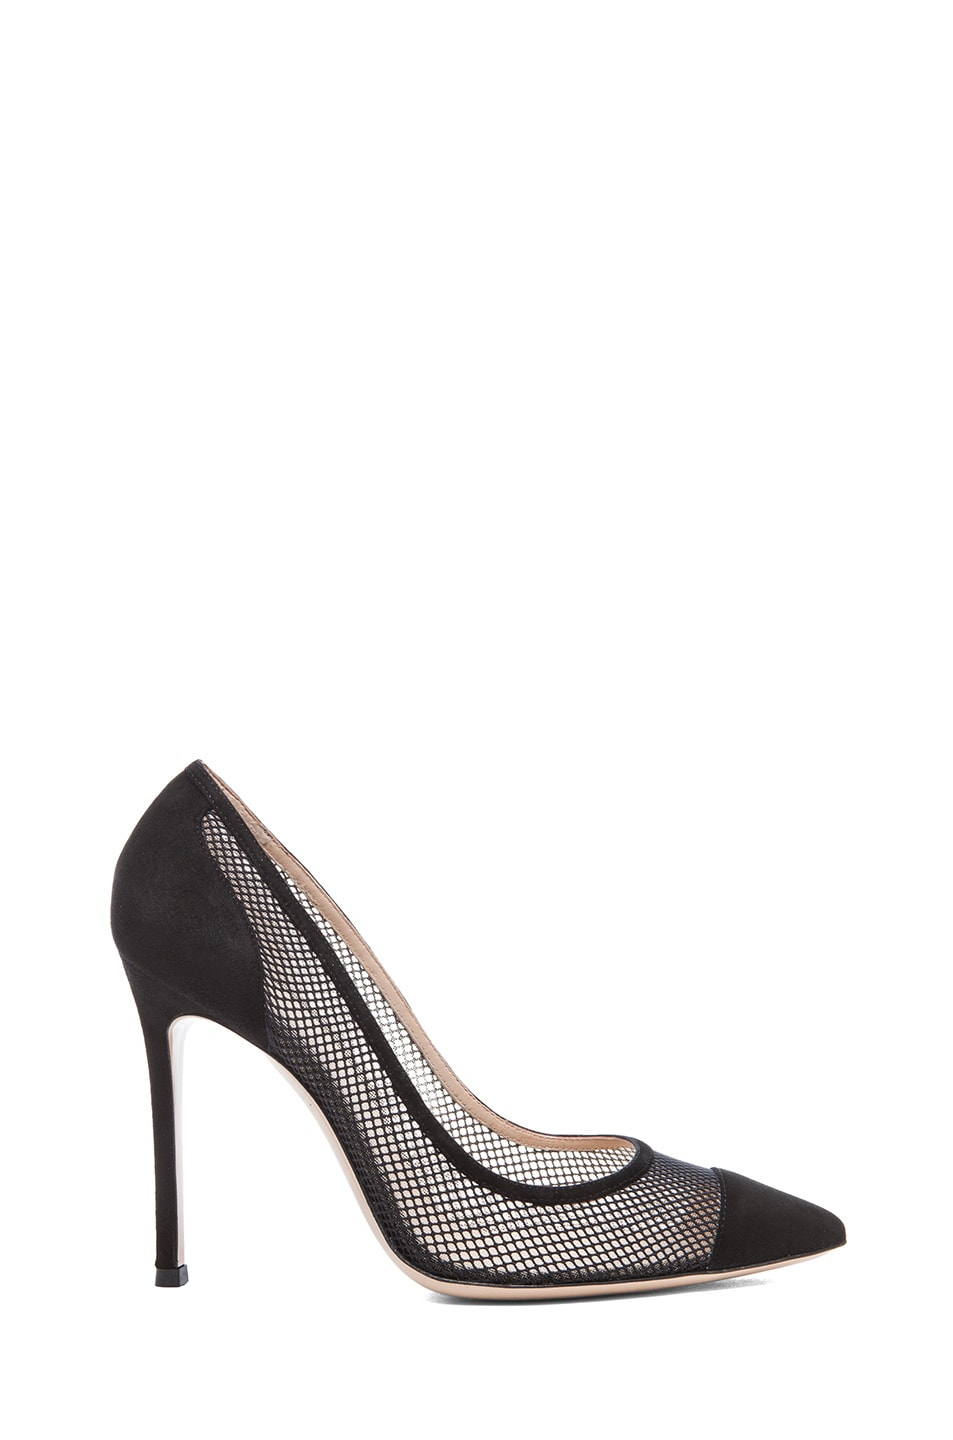 Image 1 of Gianvito Rossi Suede Pumps in Nero & Nude